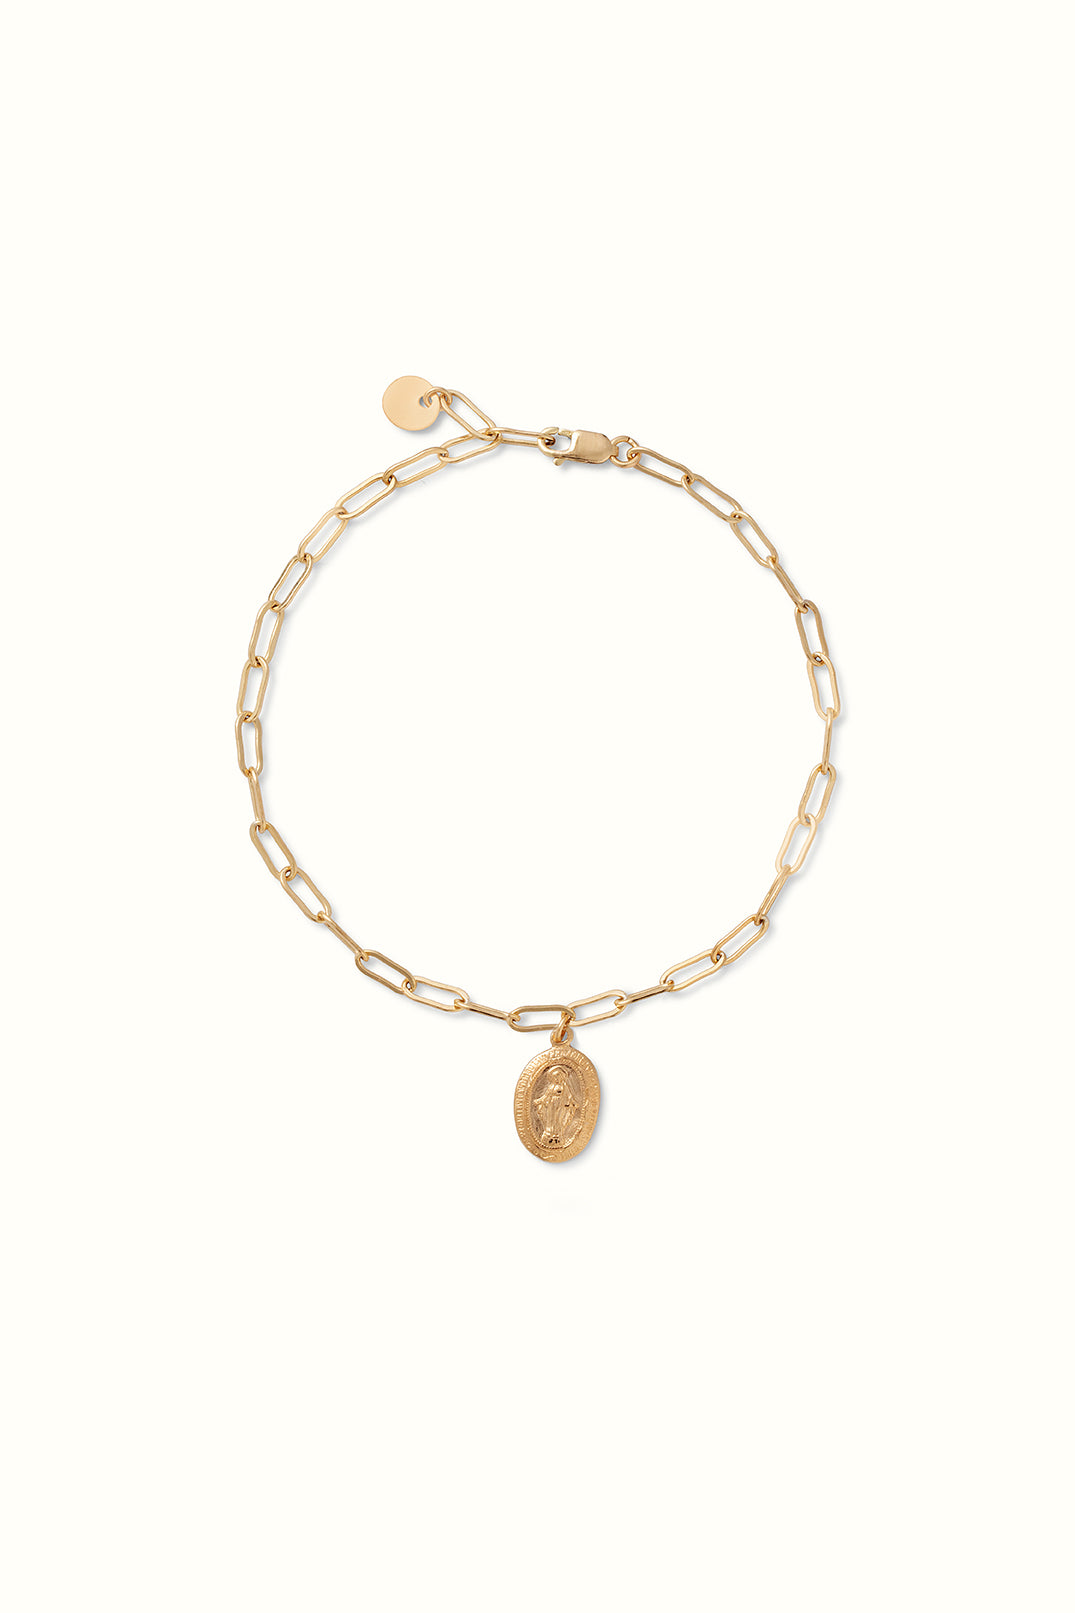 product shot of a gold filled paperclip bracelet with a mary charm